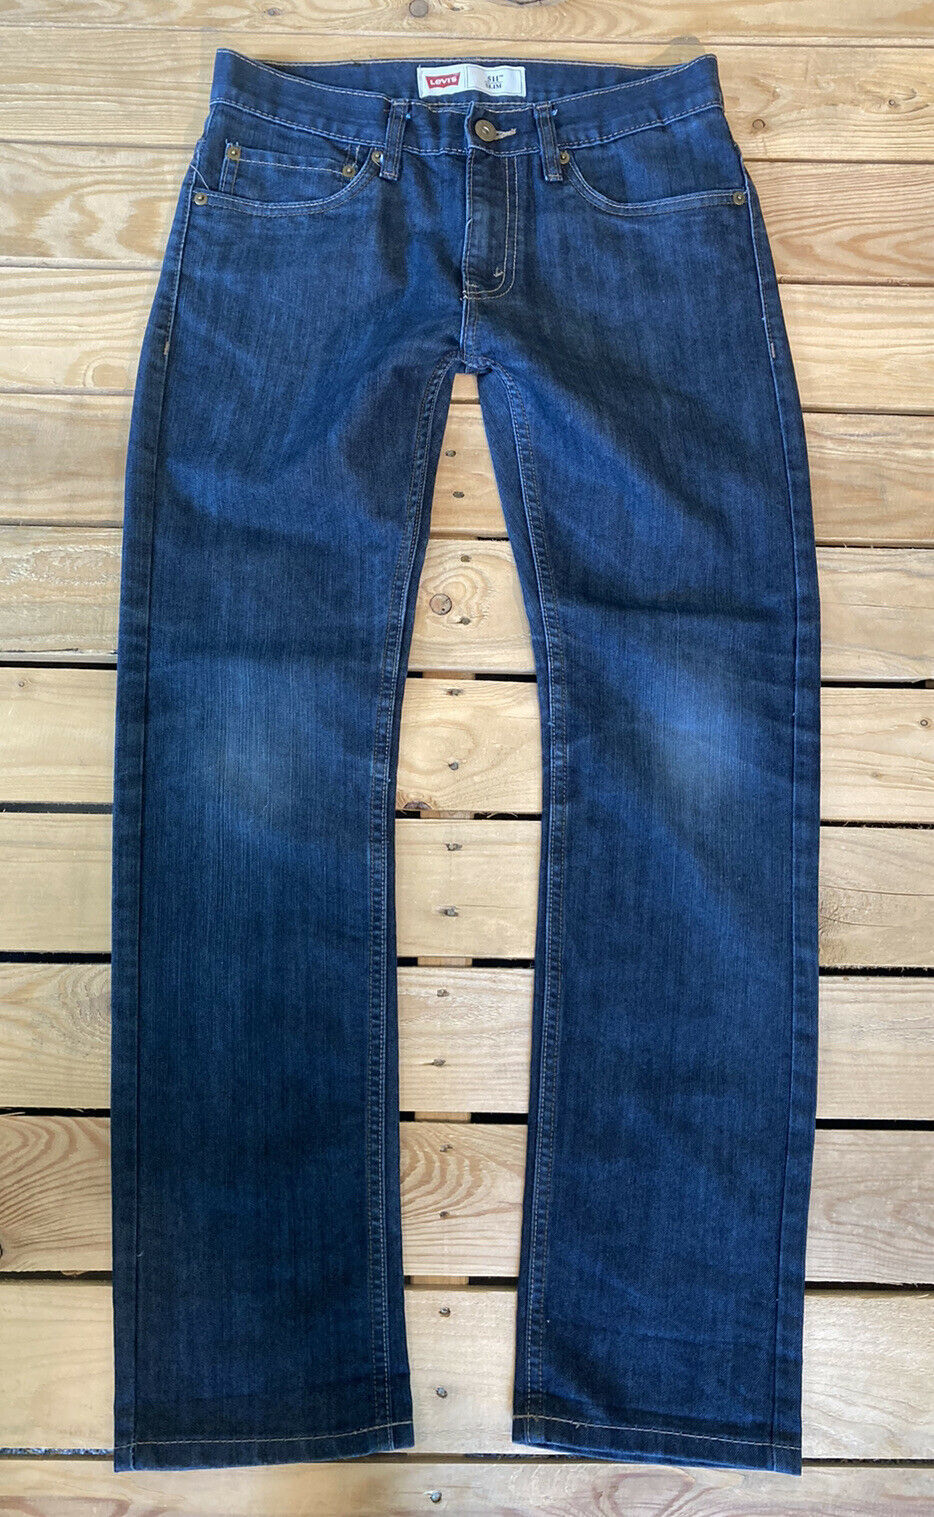 Primary image for Levi's Girls 511 Slim Fit Jeans Size 16 (28x28) In a Dark Wash EUC A7